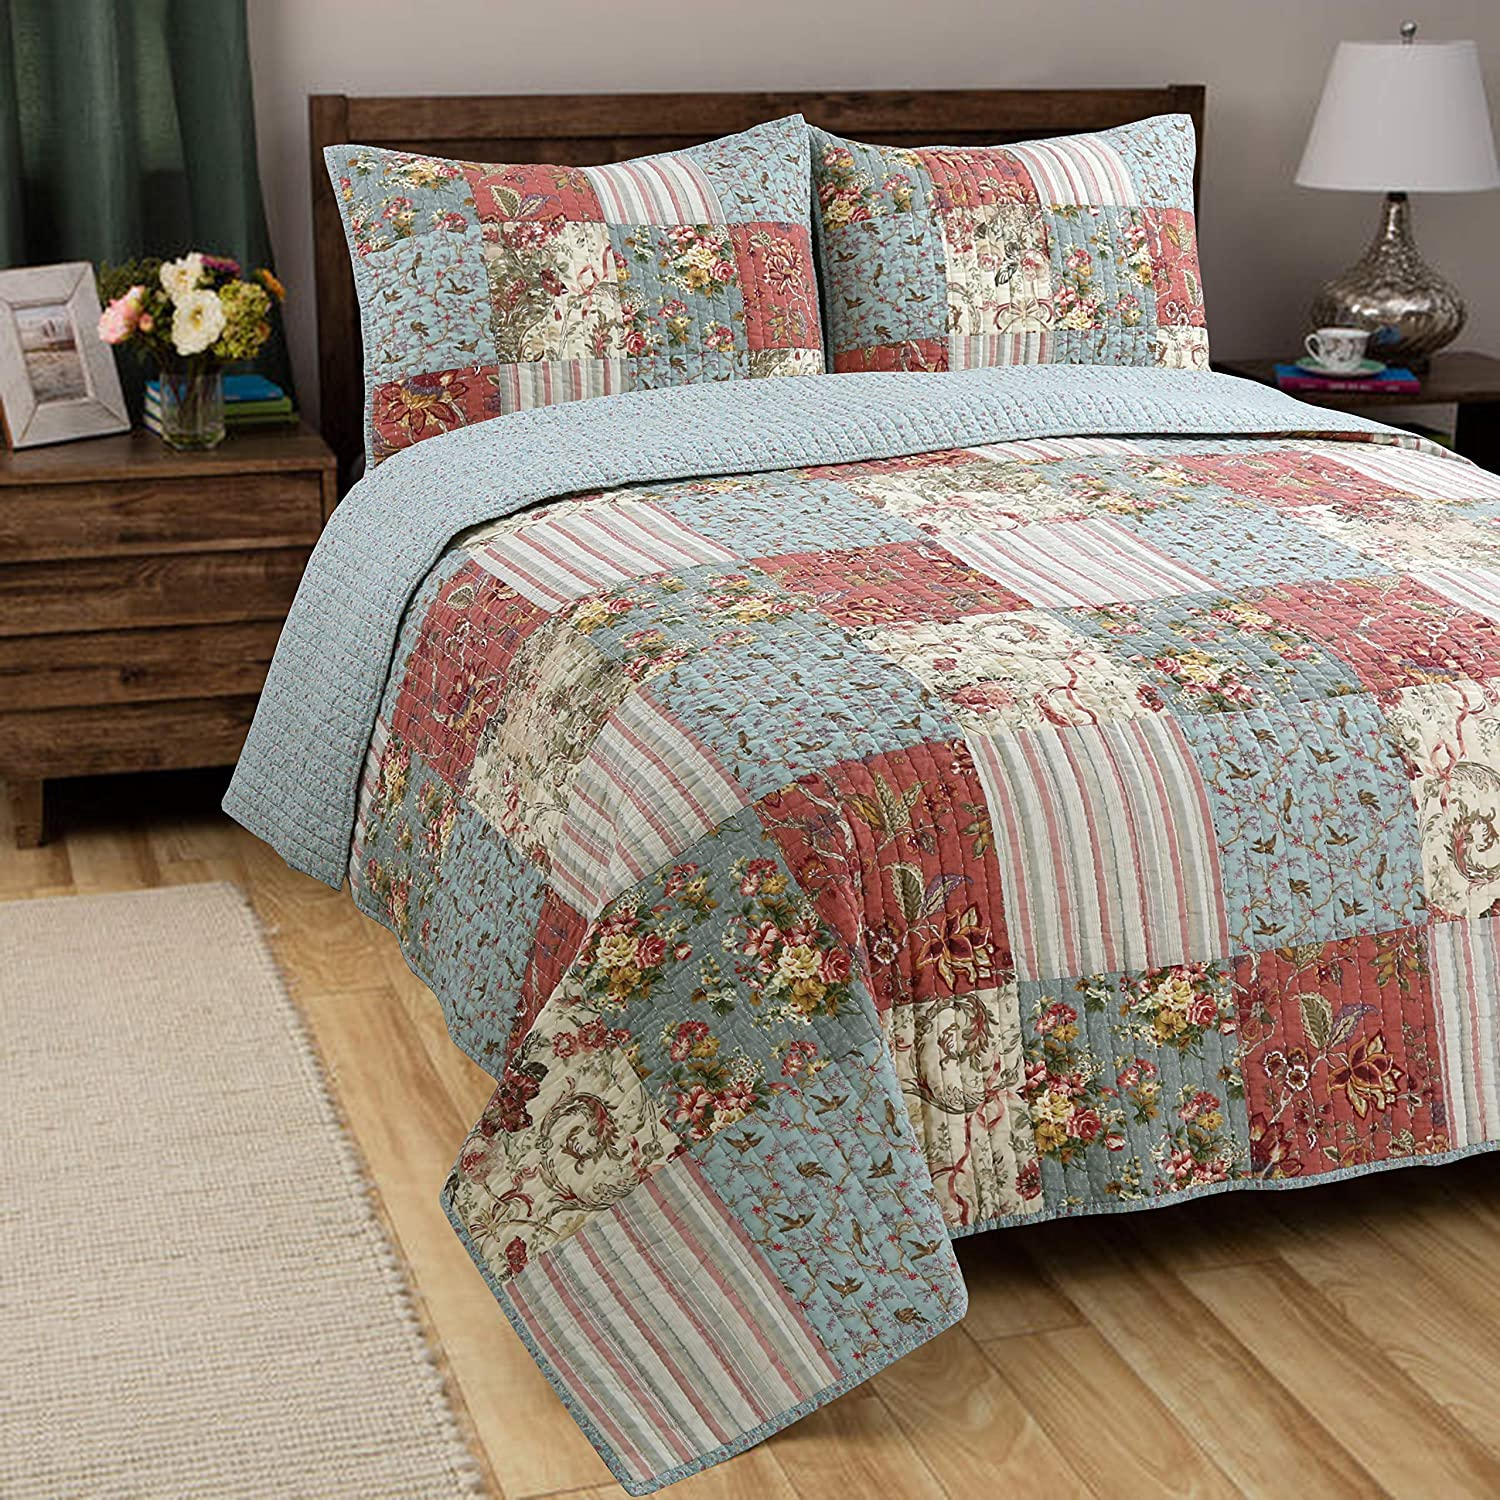 Brown Grid, Queen - 3 Piece Gift for Men Soft Touching Striped Real Patchwork Brown Plaid Country Style Reversible Coverlet Bedspread Set Cozy Line Home Fashions Brody Quilt Bedding Set